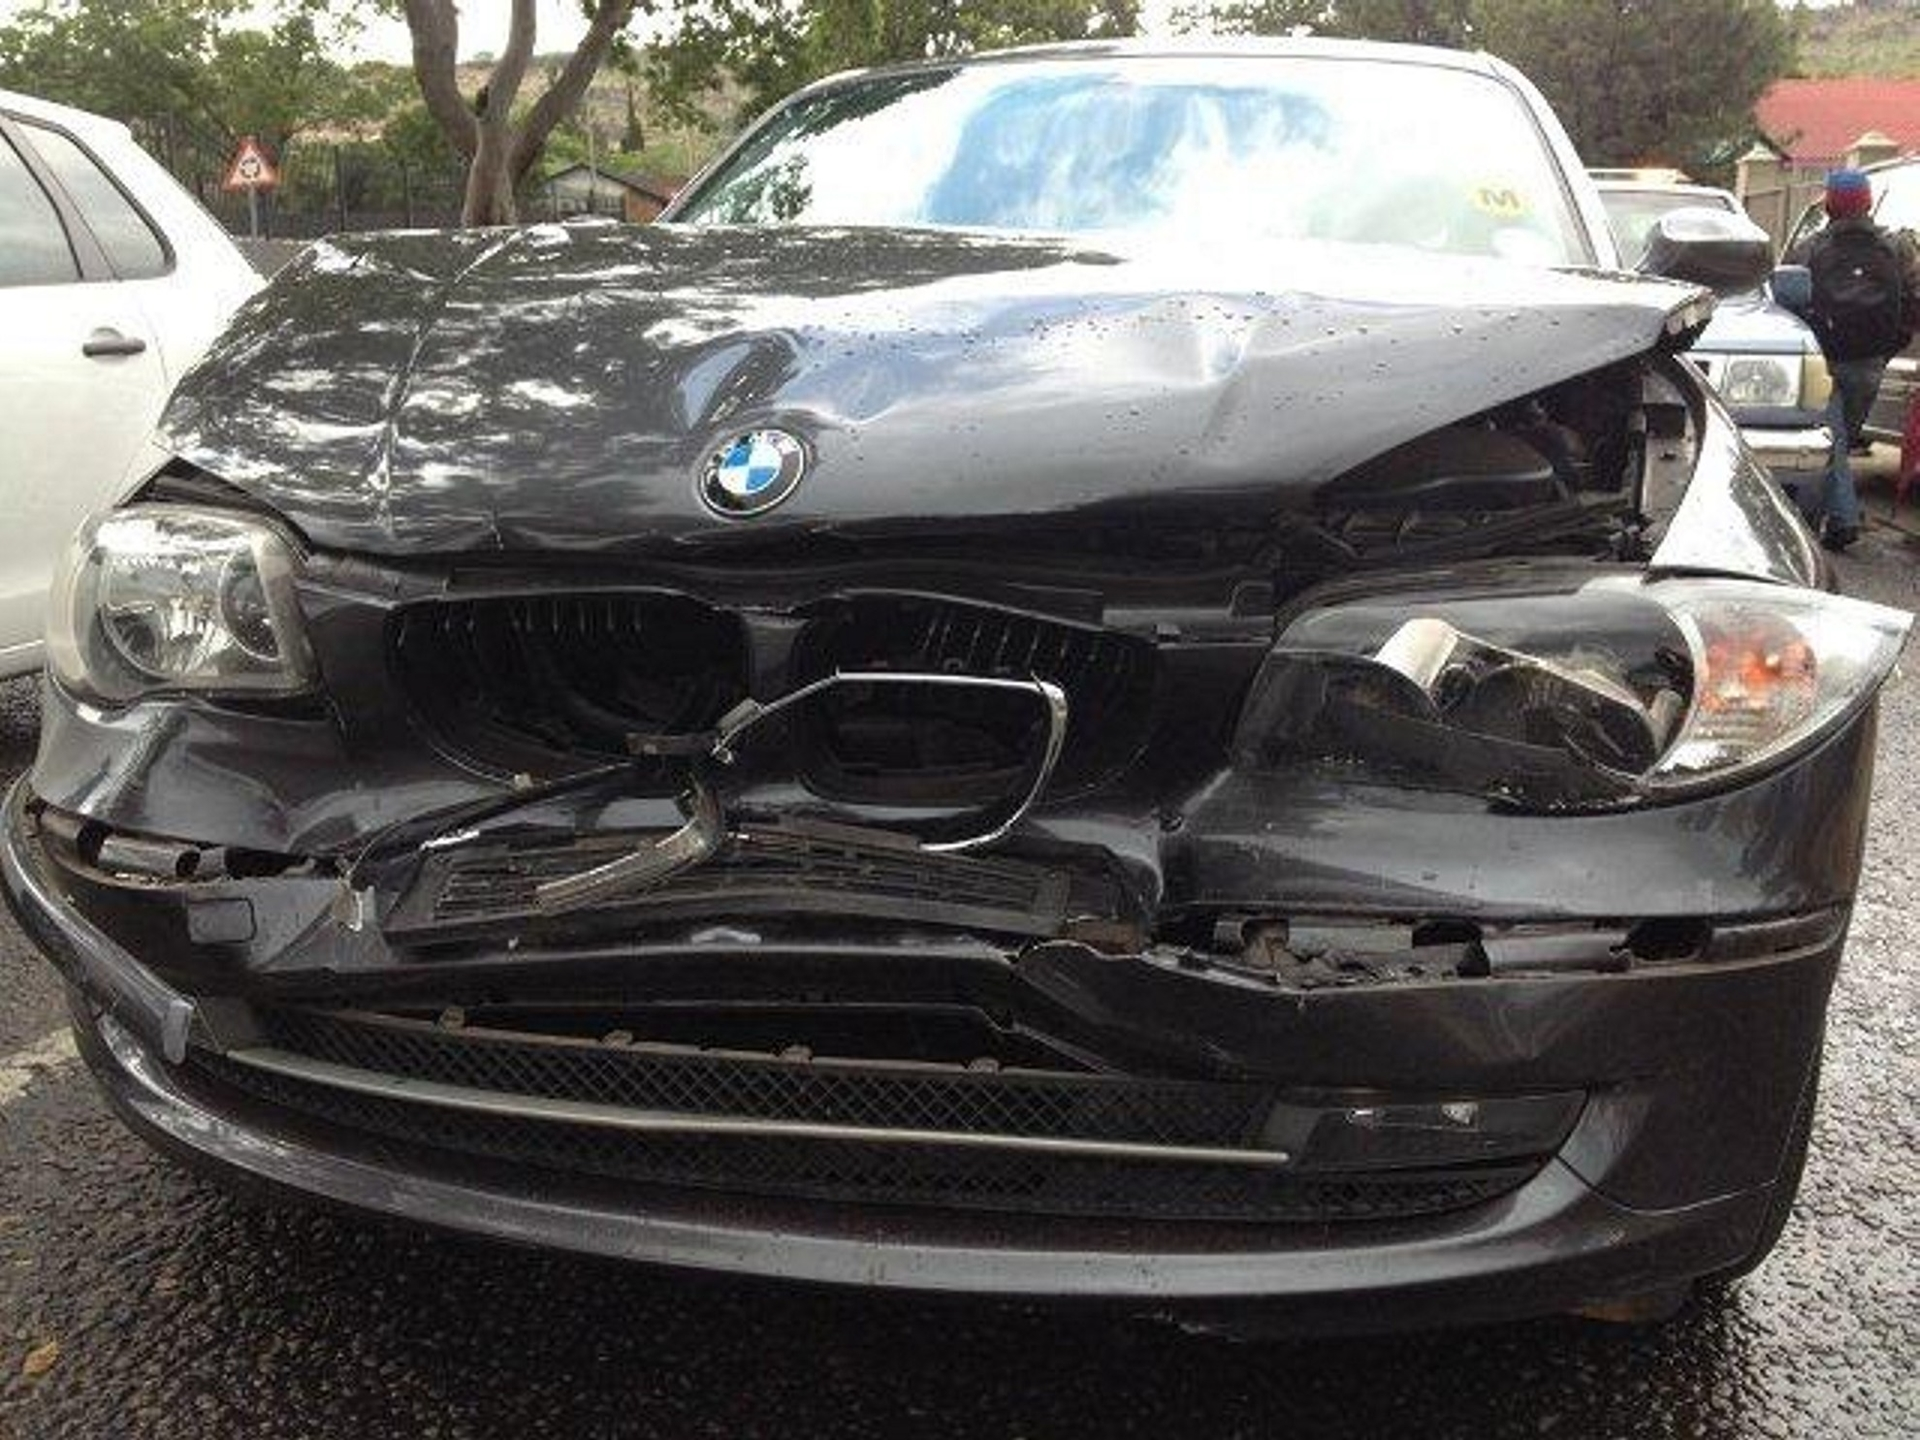 BMW Accident